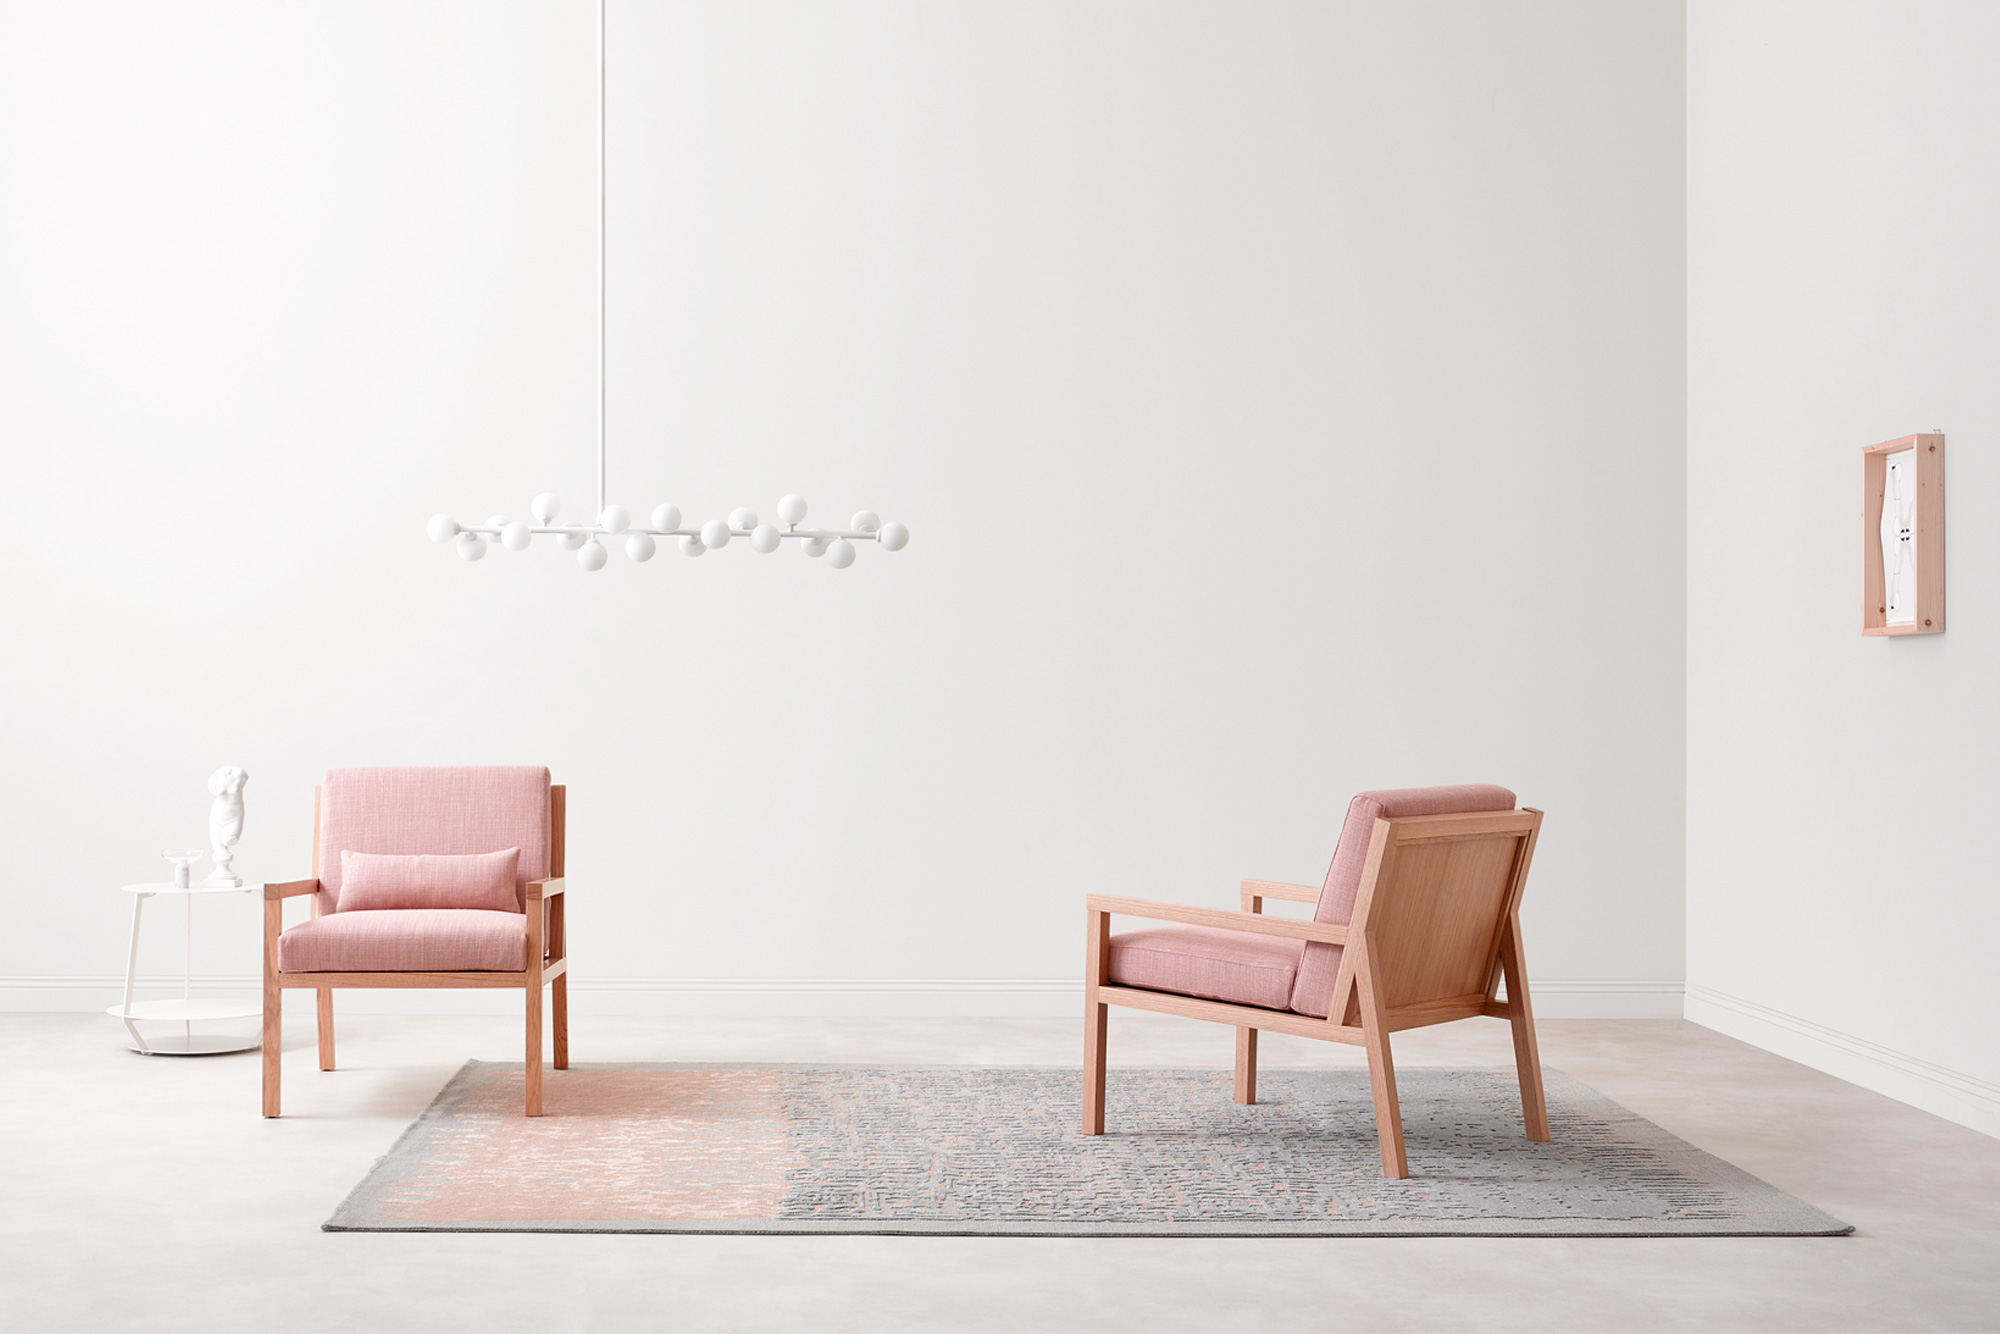 Bella Sedia. Bella Chair. Paola Zani: arredamento di design made in italy. Maestria artigianale e ricerca formale. Paola Zani: Furniture design made in Italy. Craftsmanship and research.